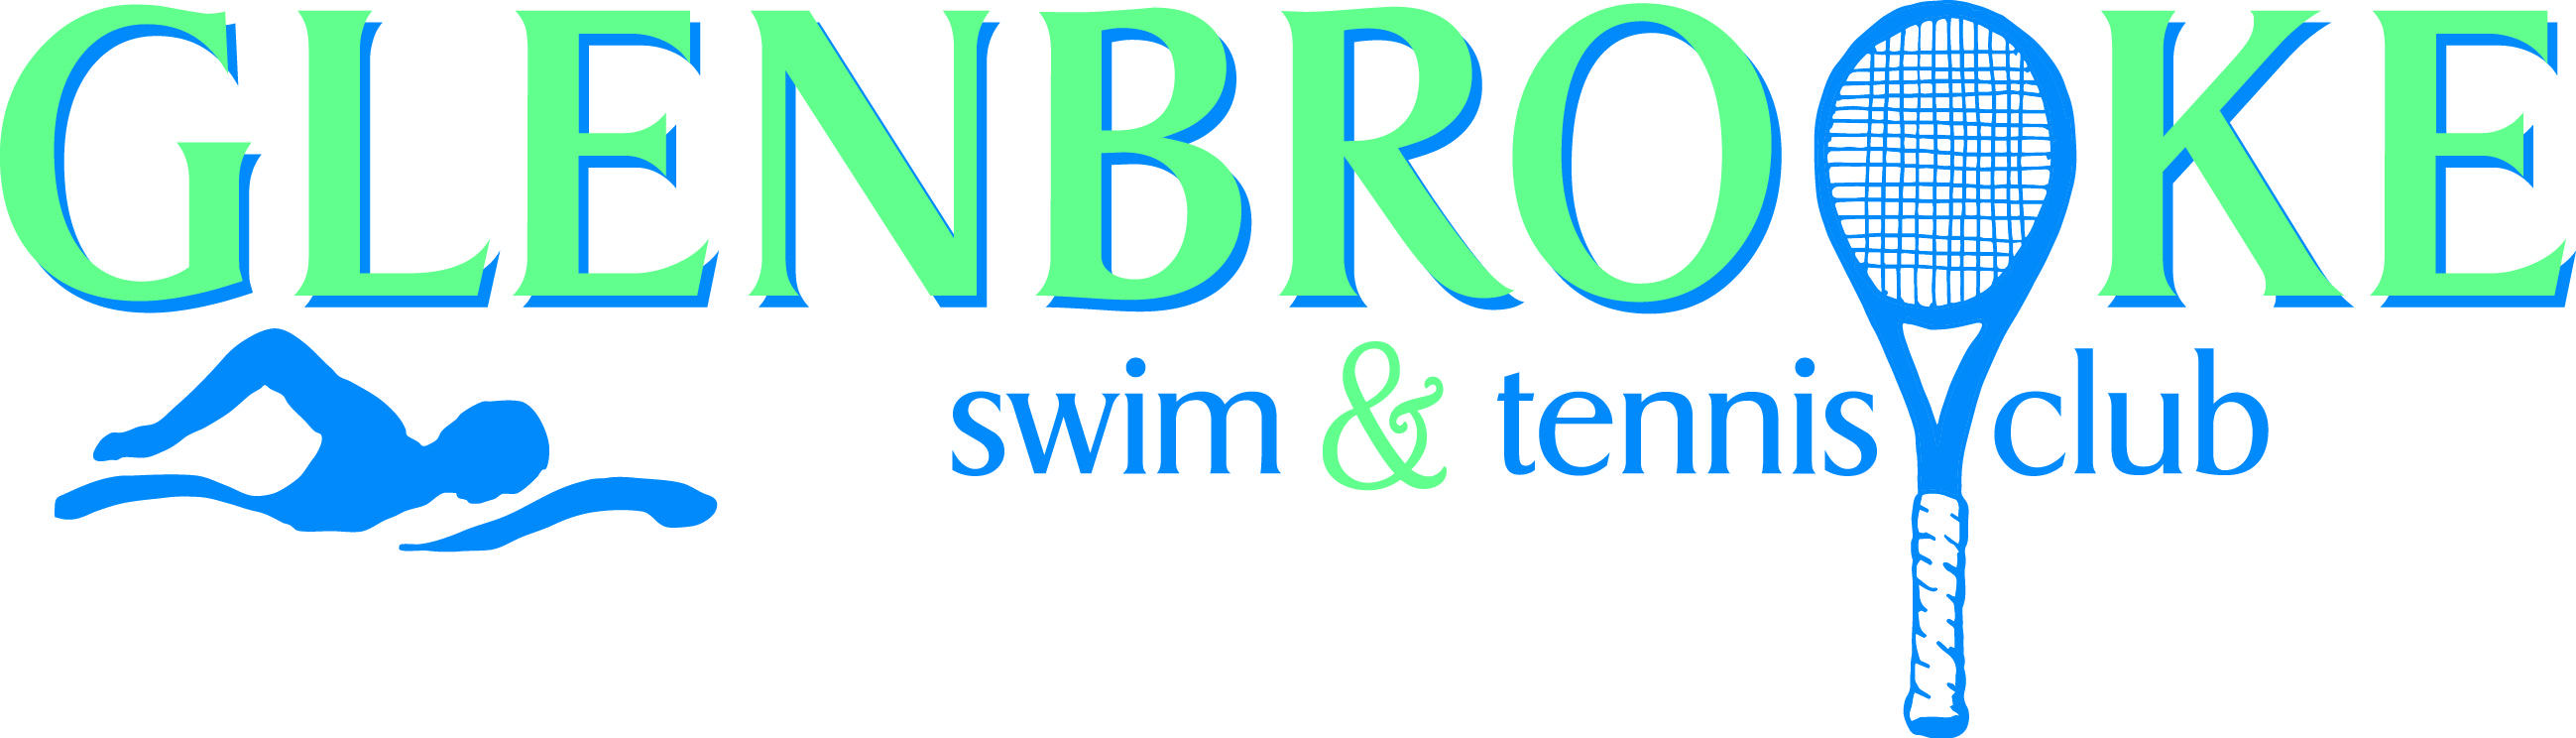 Glenbrooke Swim and Tennis Club, swimming, Goal, Club